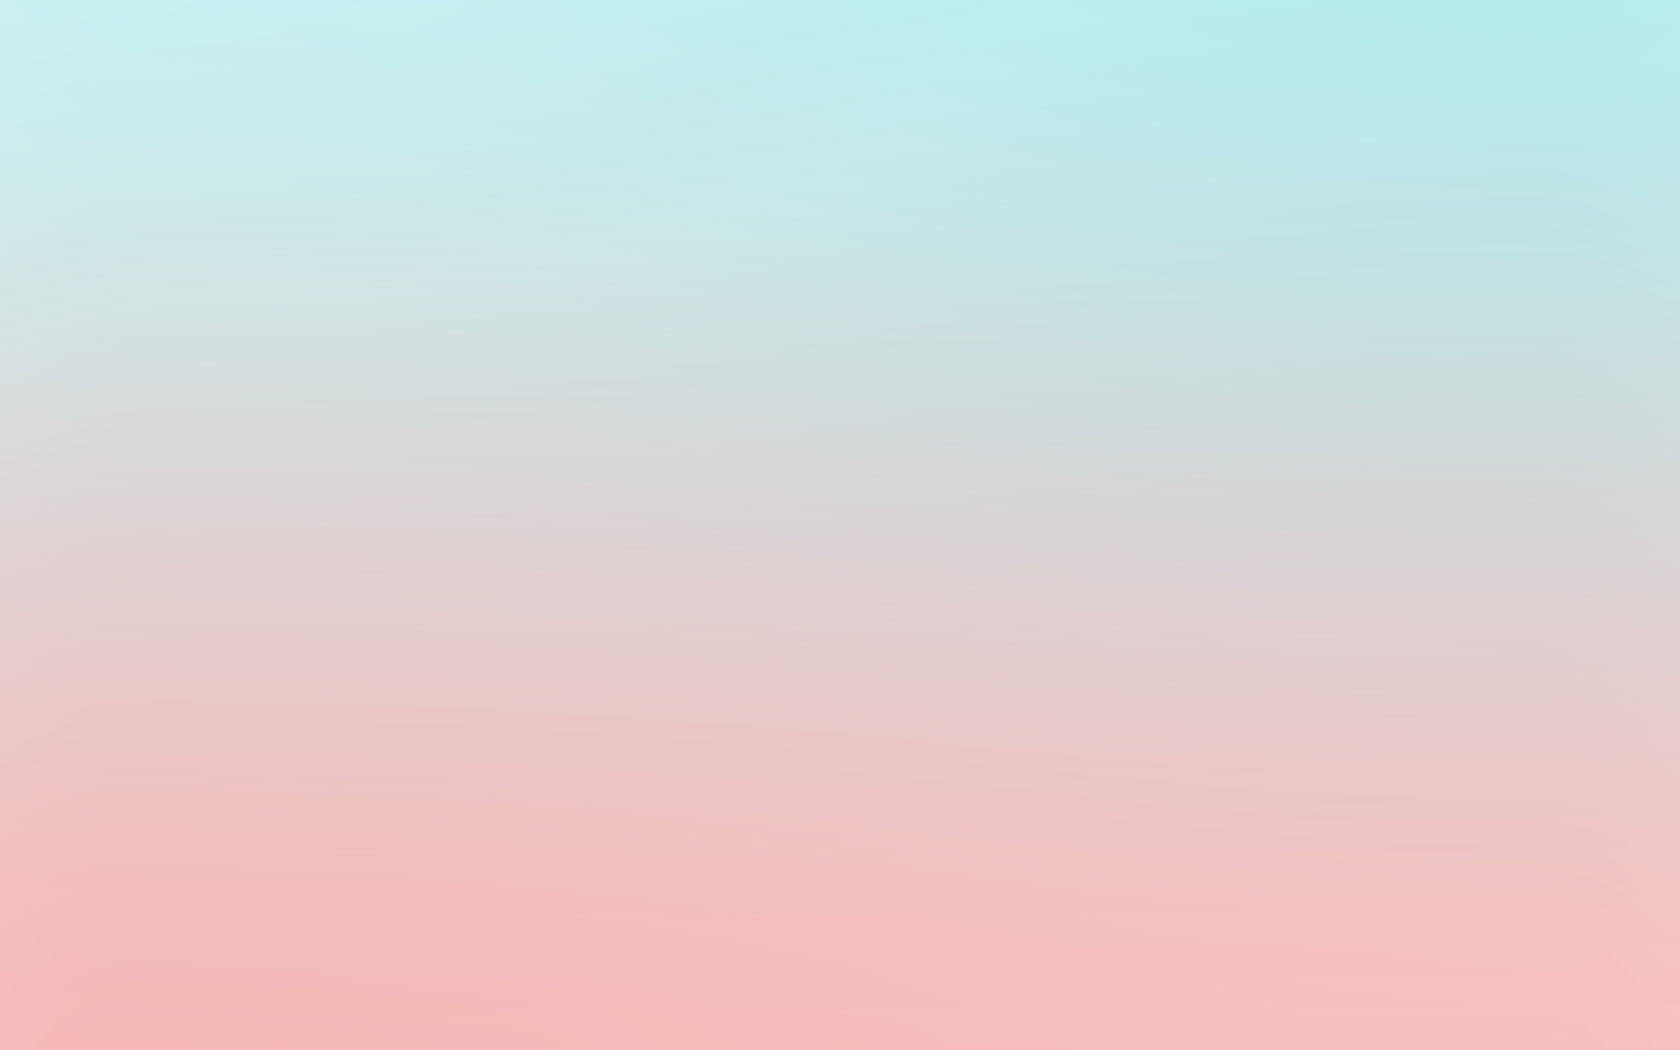 Pink Car Hd Wallpaper Sm40 Blue Red Soft Pastel Blur Gradation Wallpaper